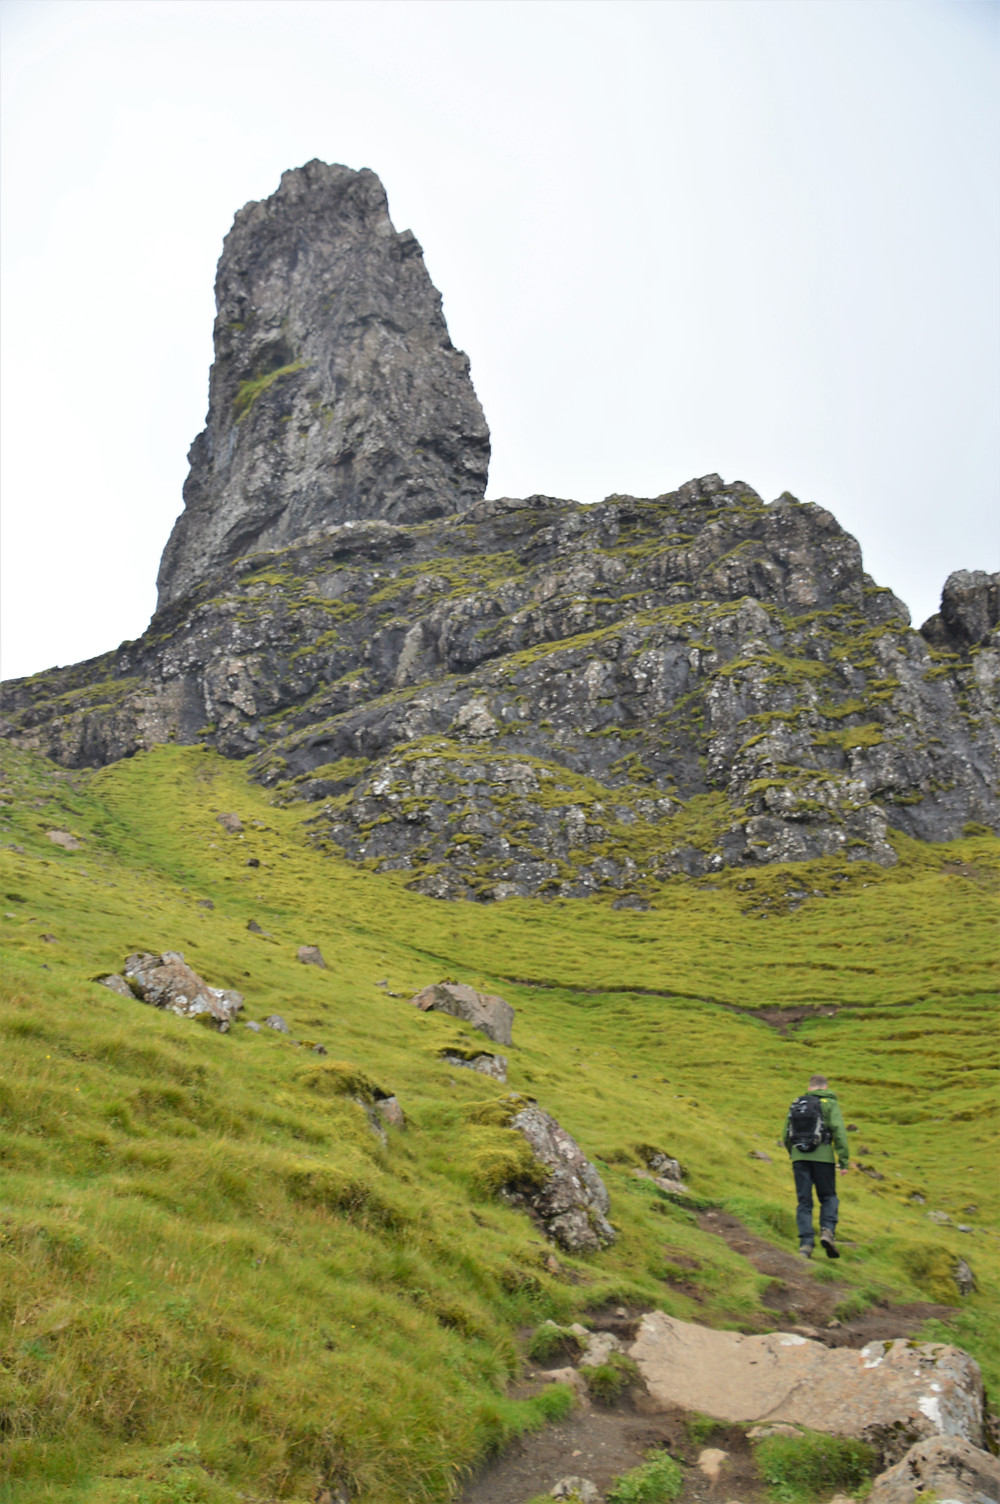 The area in front of the Old Man of Storr contains a number of oddly-shaped rock pinnacles